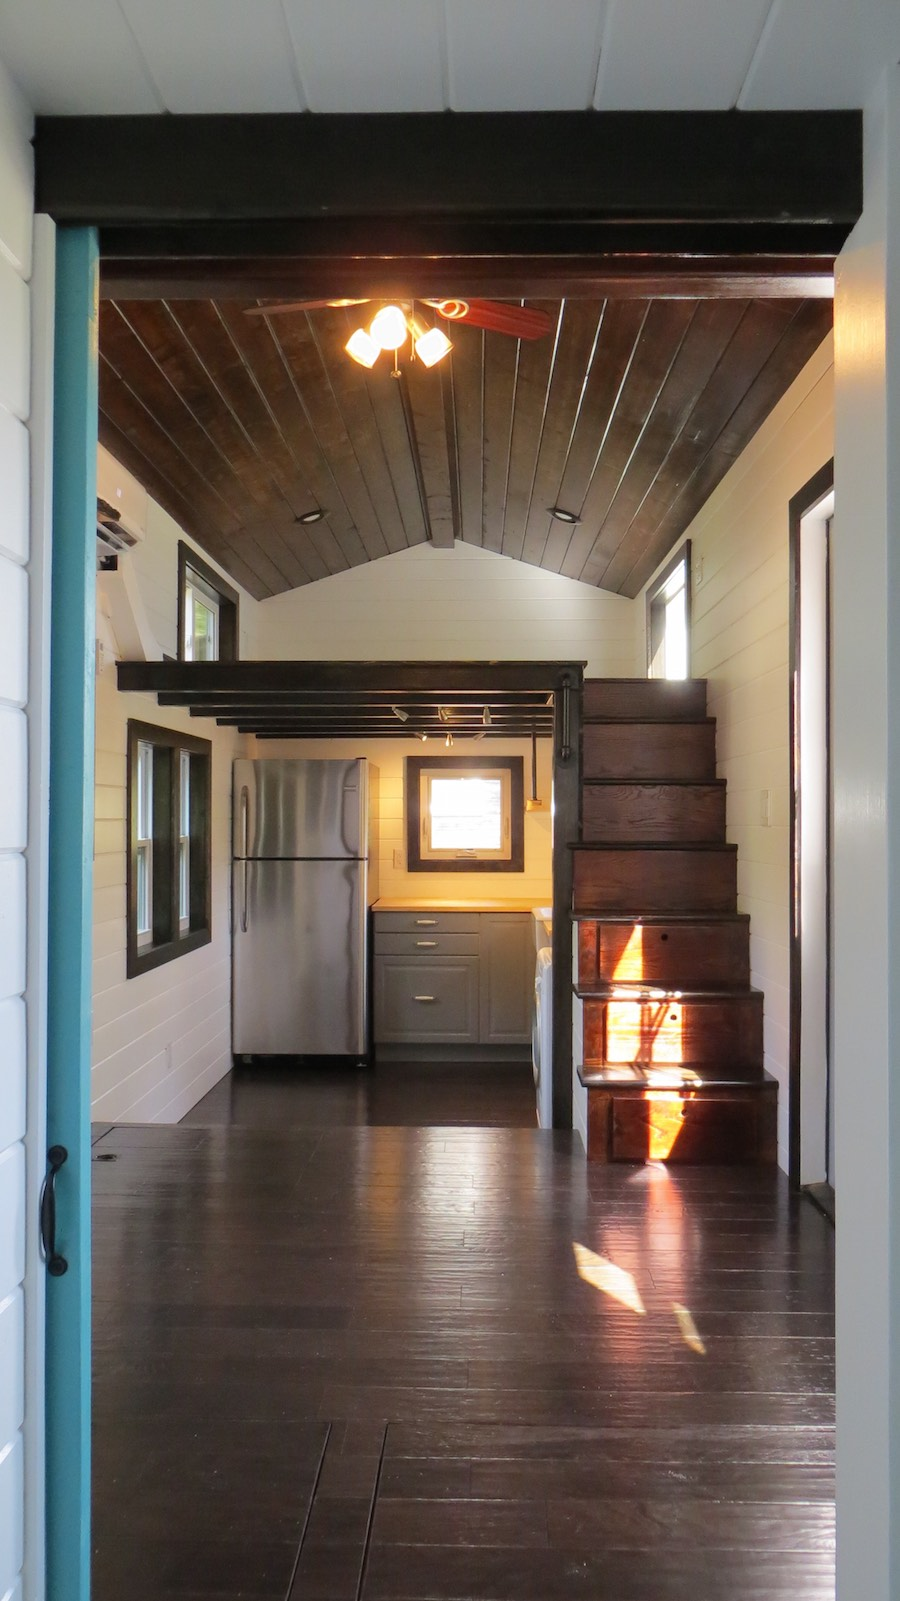 36 North Tiny House Swoon – Tiny House Designs And Floor Plans